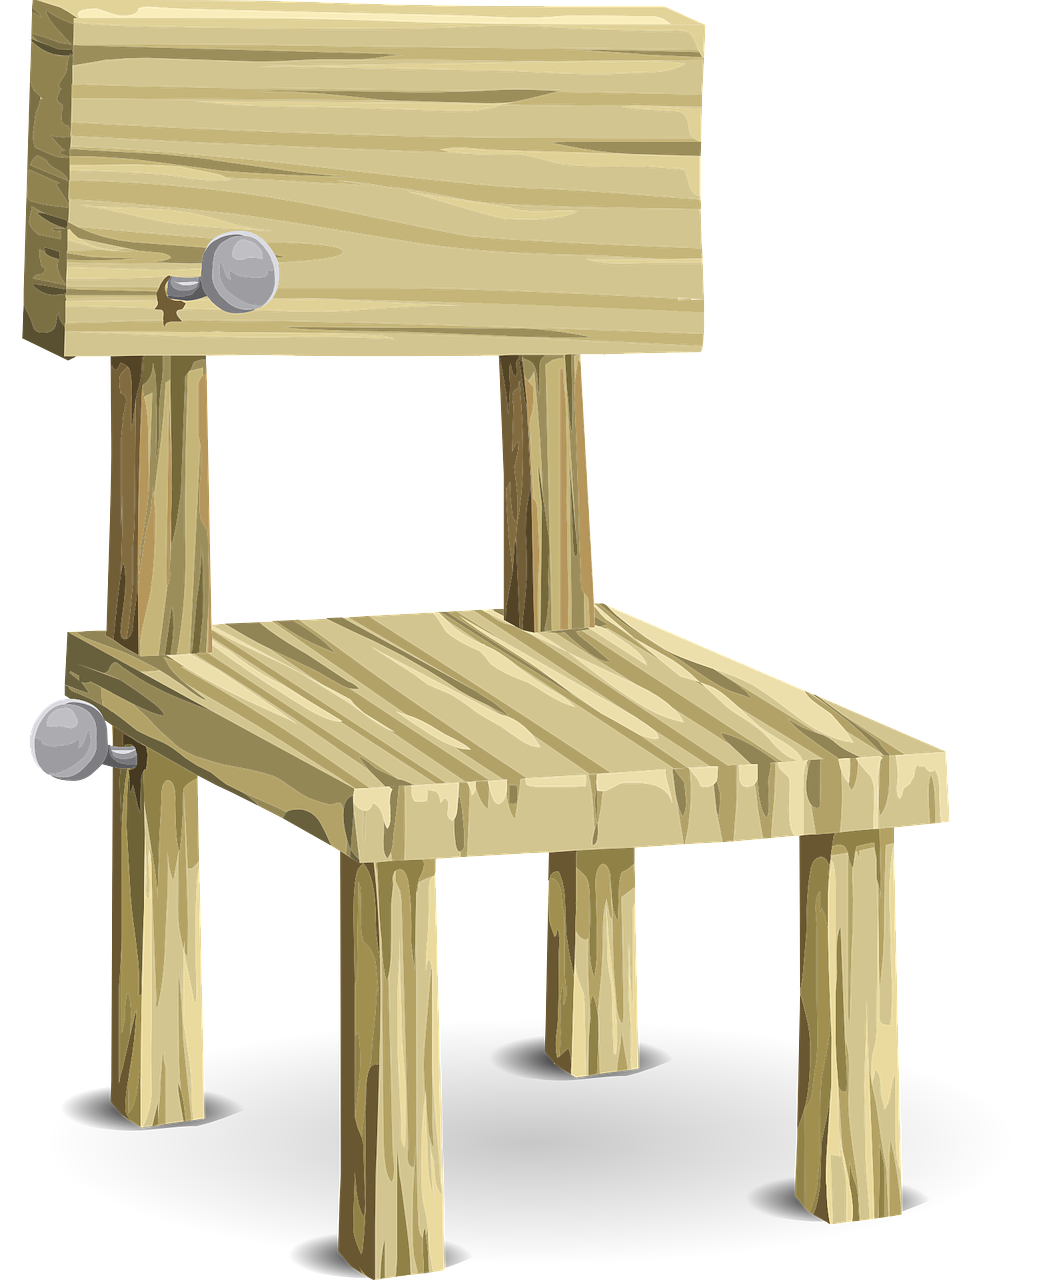 Home Decor Chairs Wooden Furniture Brown Yellow Homedecor Chairs Wooden Furniture Brown Yellow